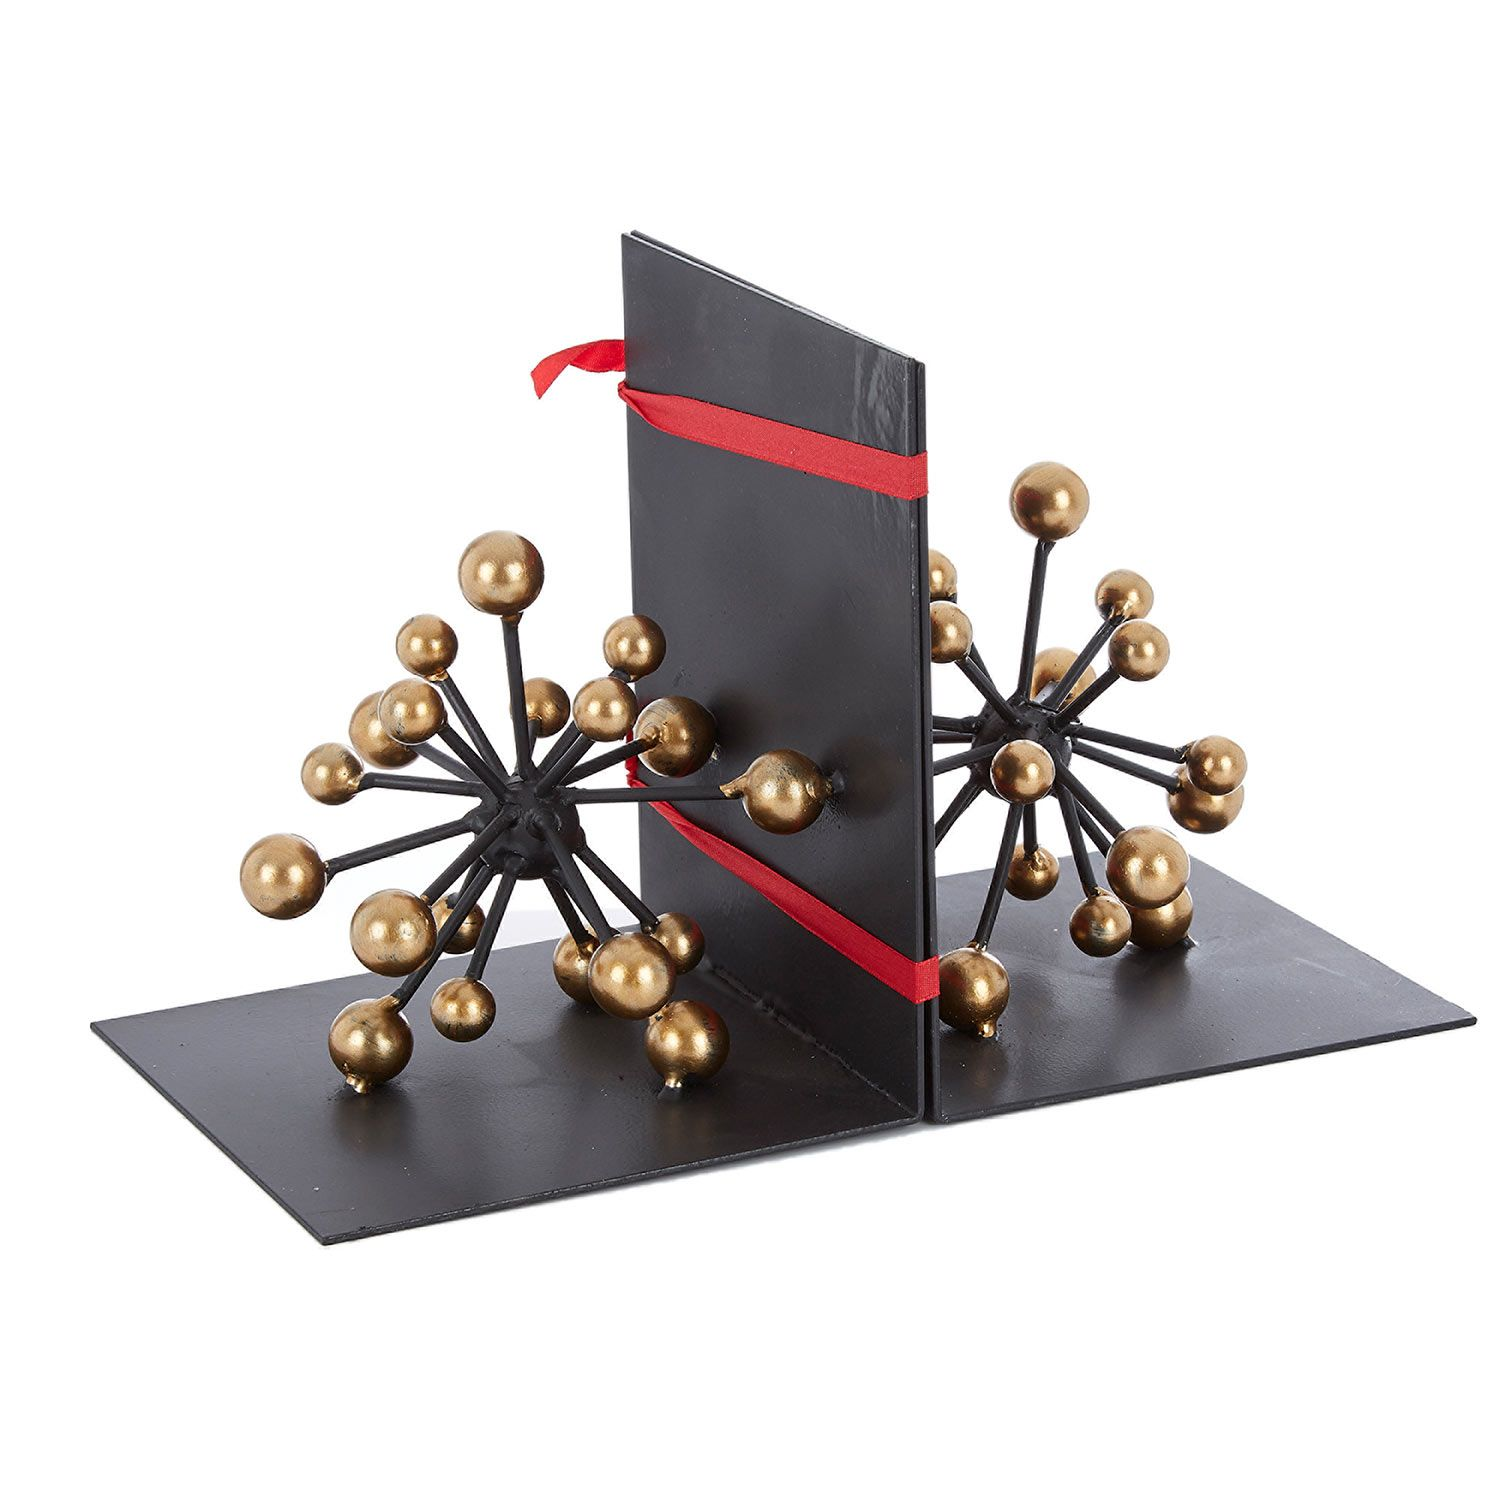 Two Gold Tone Molecular Bookends